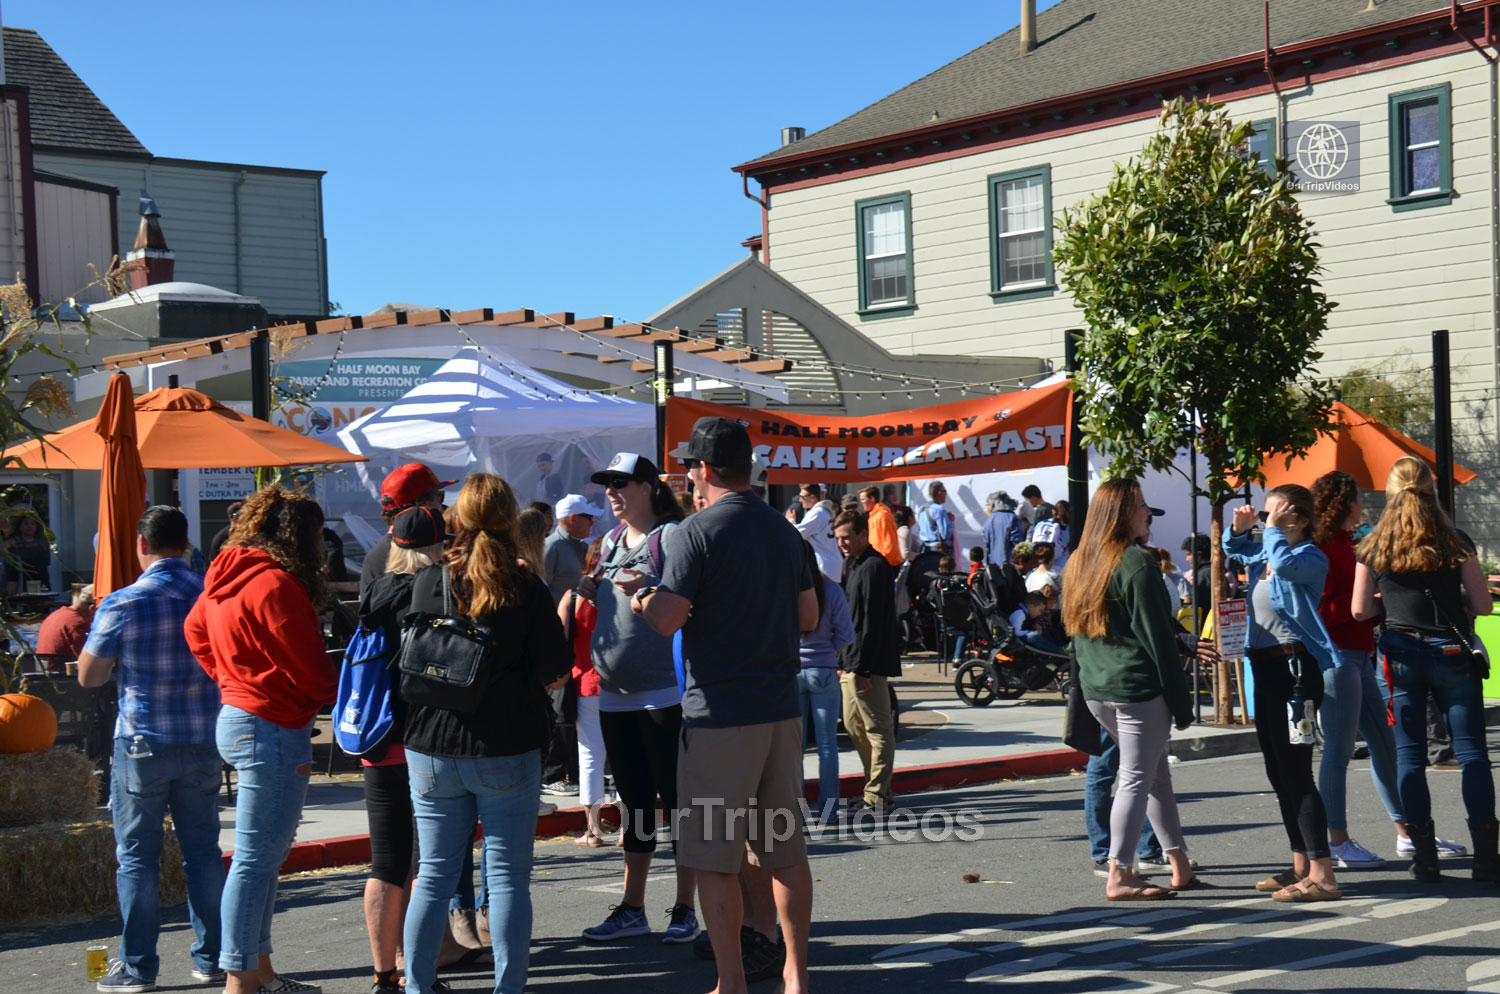 Art and Pumpkin Festival(Parade), Half Moon Bay, CA, USA - Picture 13 of 25